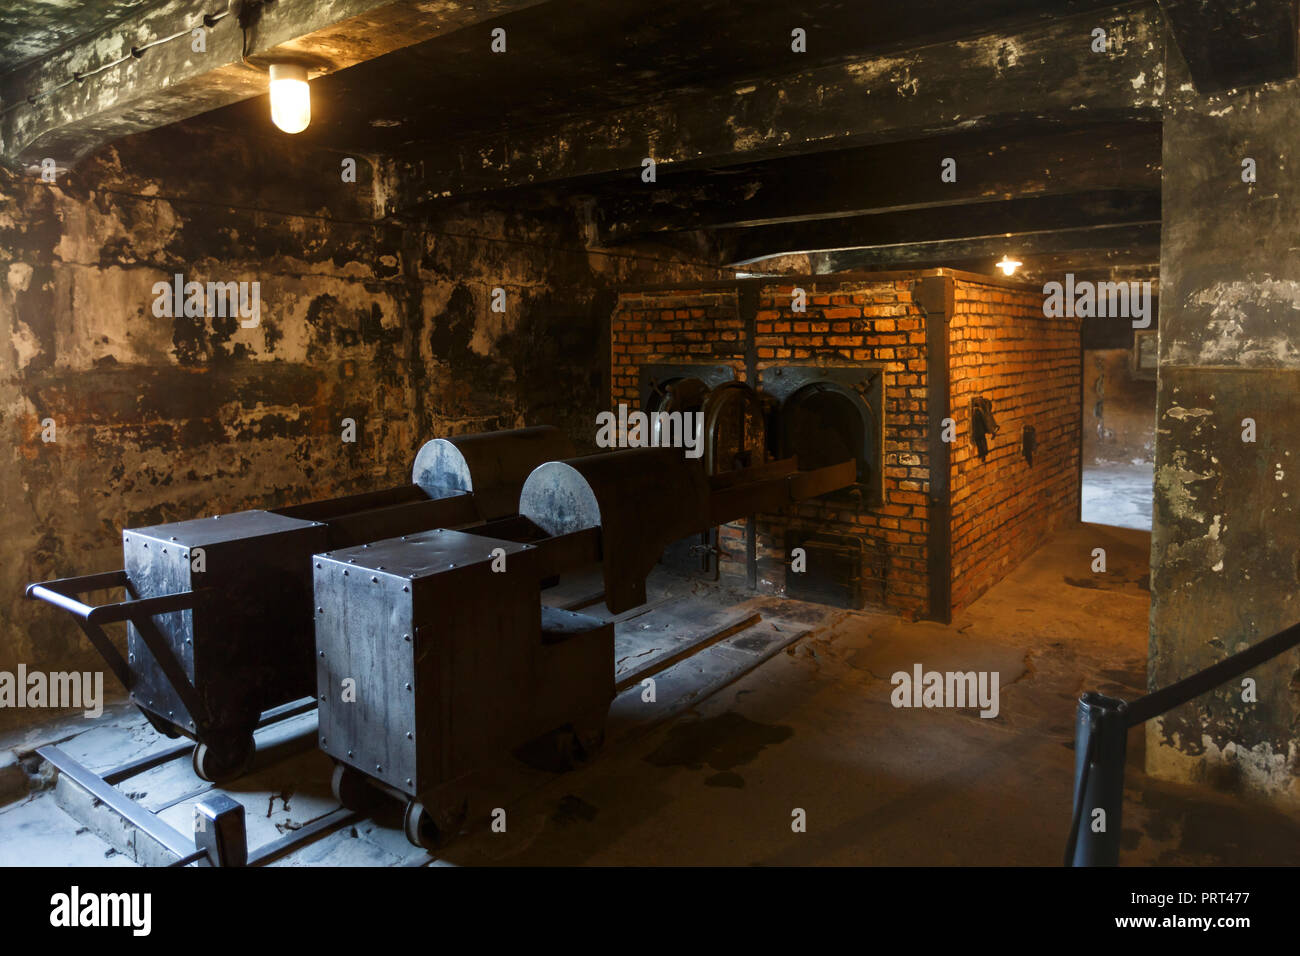 Oswiecim, Poland - August 22, 2018: Crematory in former German Nazi Concentration and Extermination Camp Auschwitz-Birkenau. - Stock Image